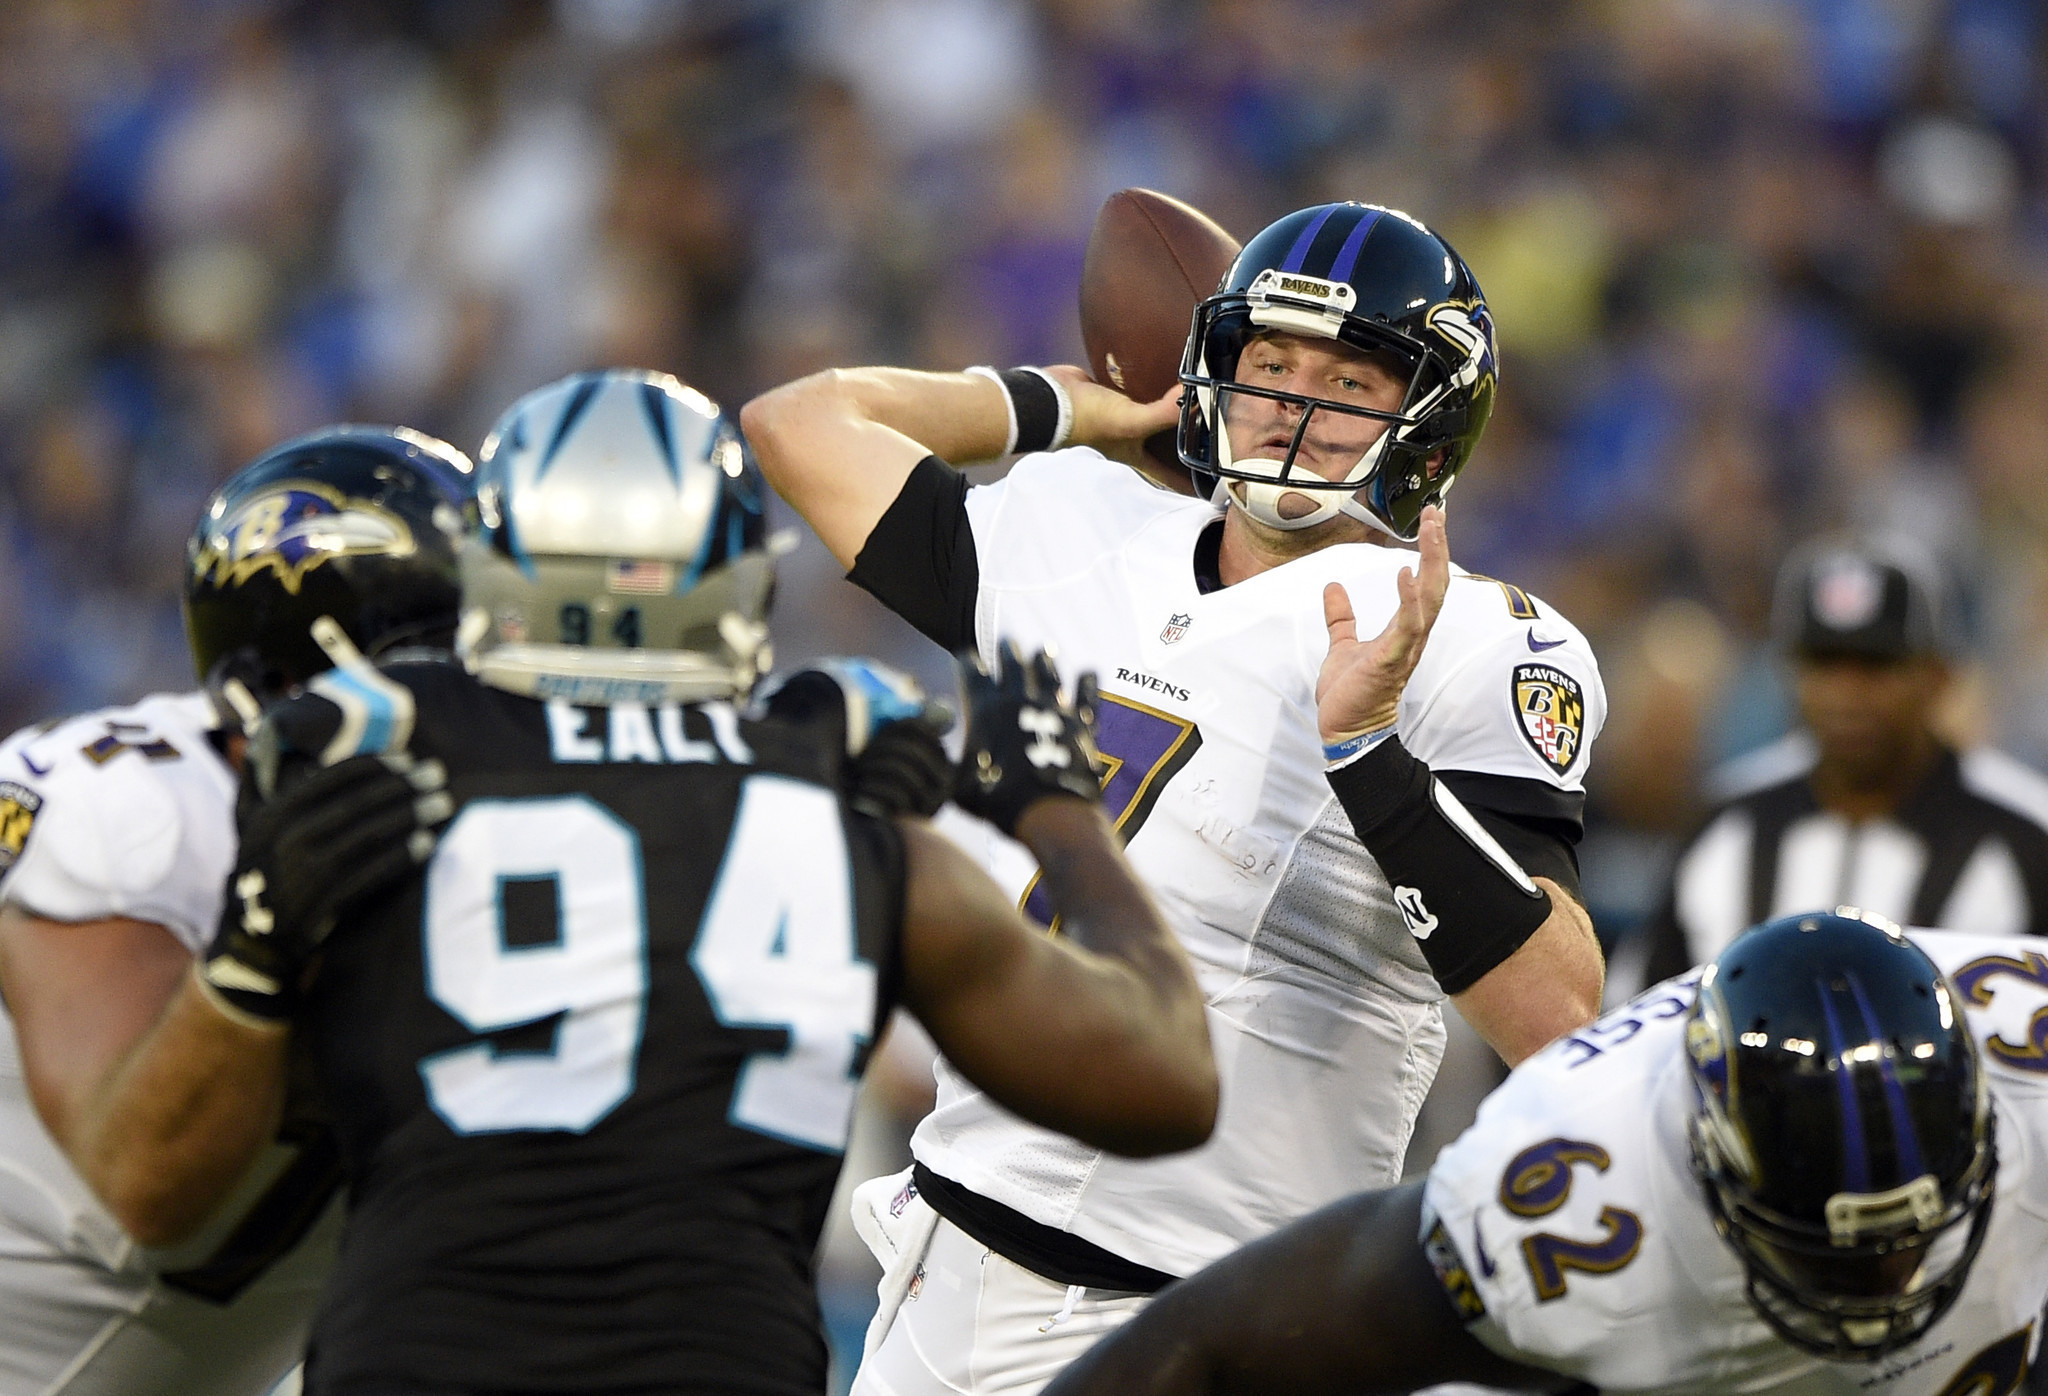 Bal-ravens-uneven-in-preseason-debut-but-play-well-enough-to-beat-the-panthers-22-19-20160811